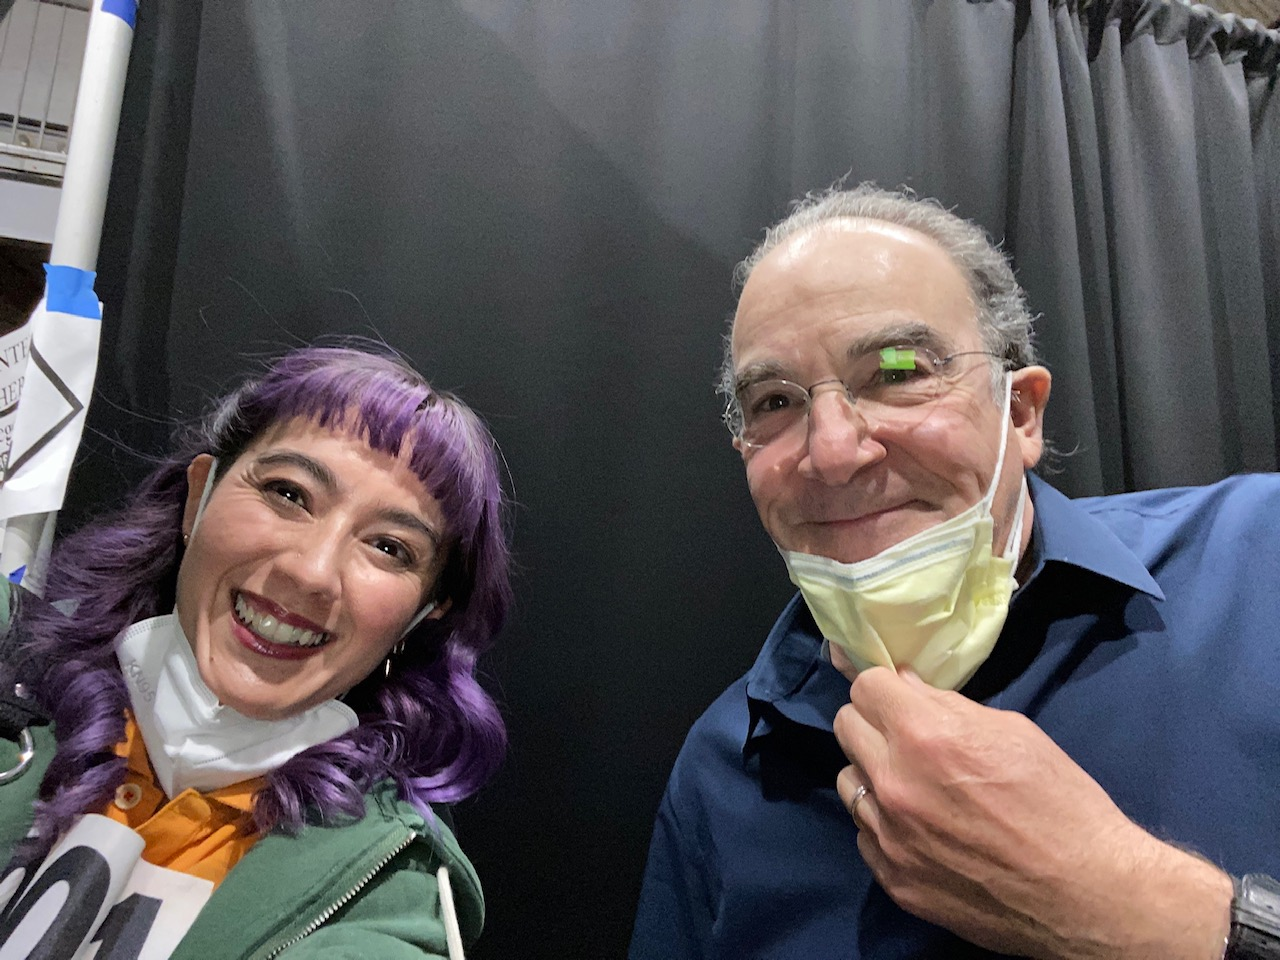 Alex on the set of The Good Fight with Mandy Patinkin